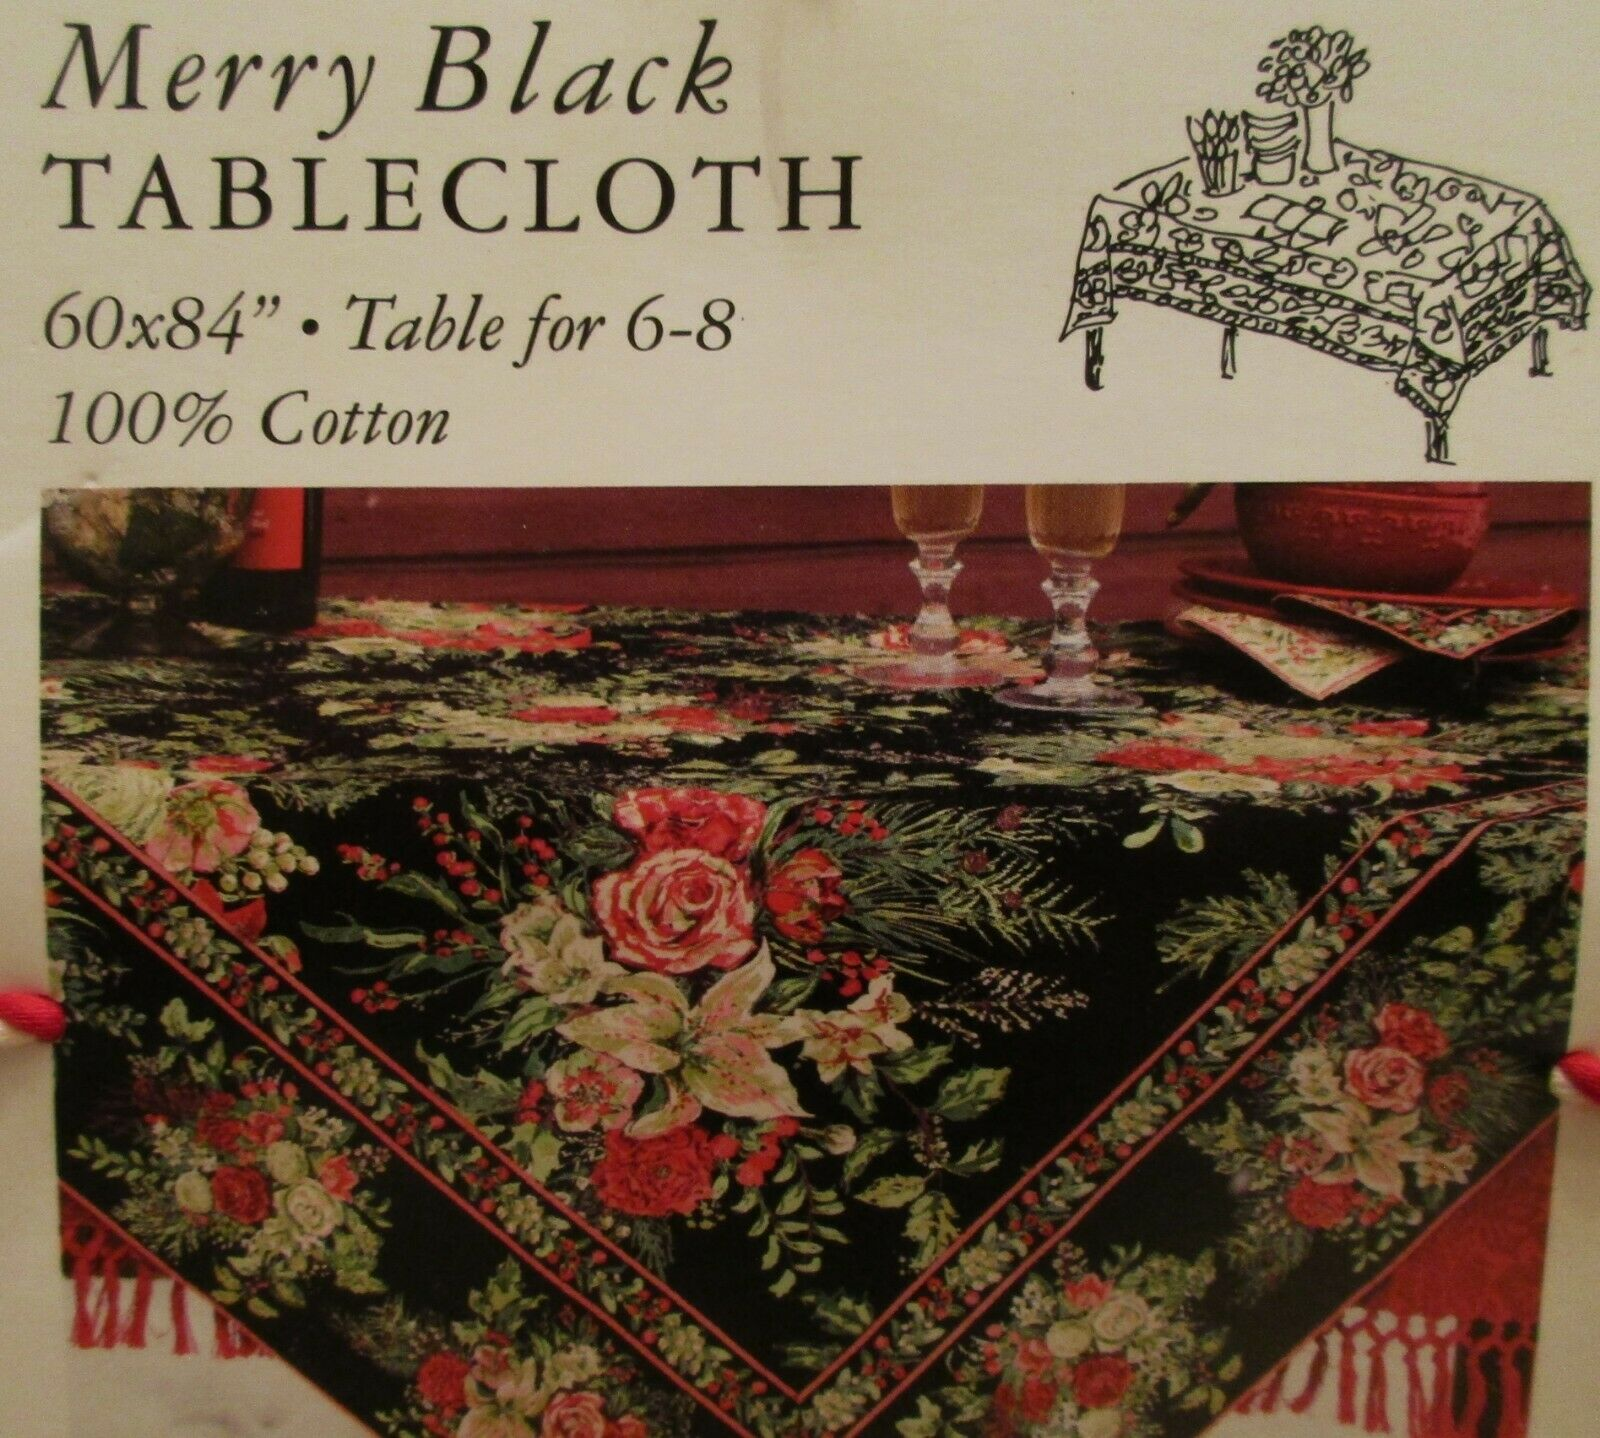 Badgley Mischka Tablecloth Black And White Floral 60 X 84 Oblong For Sale Online Ebay